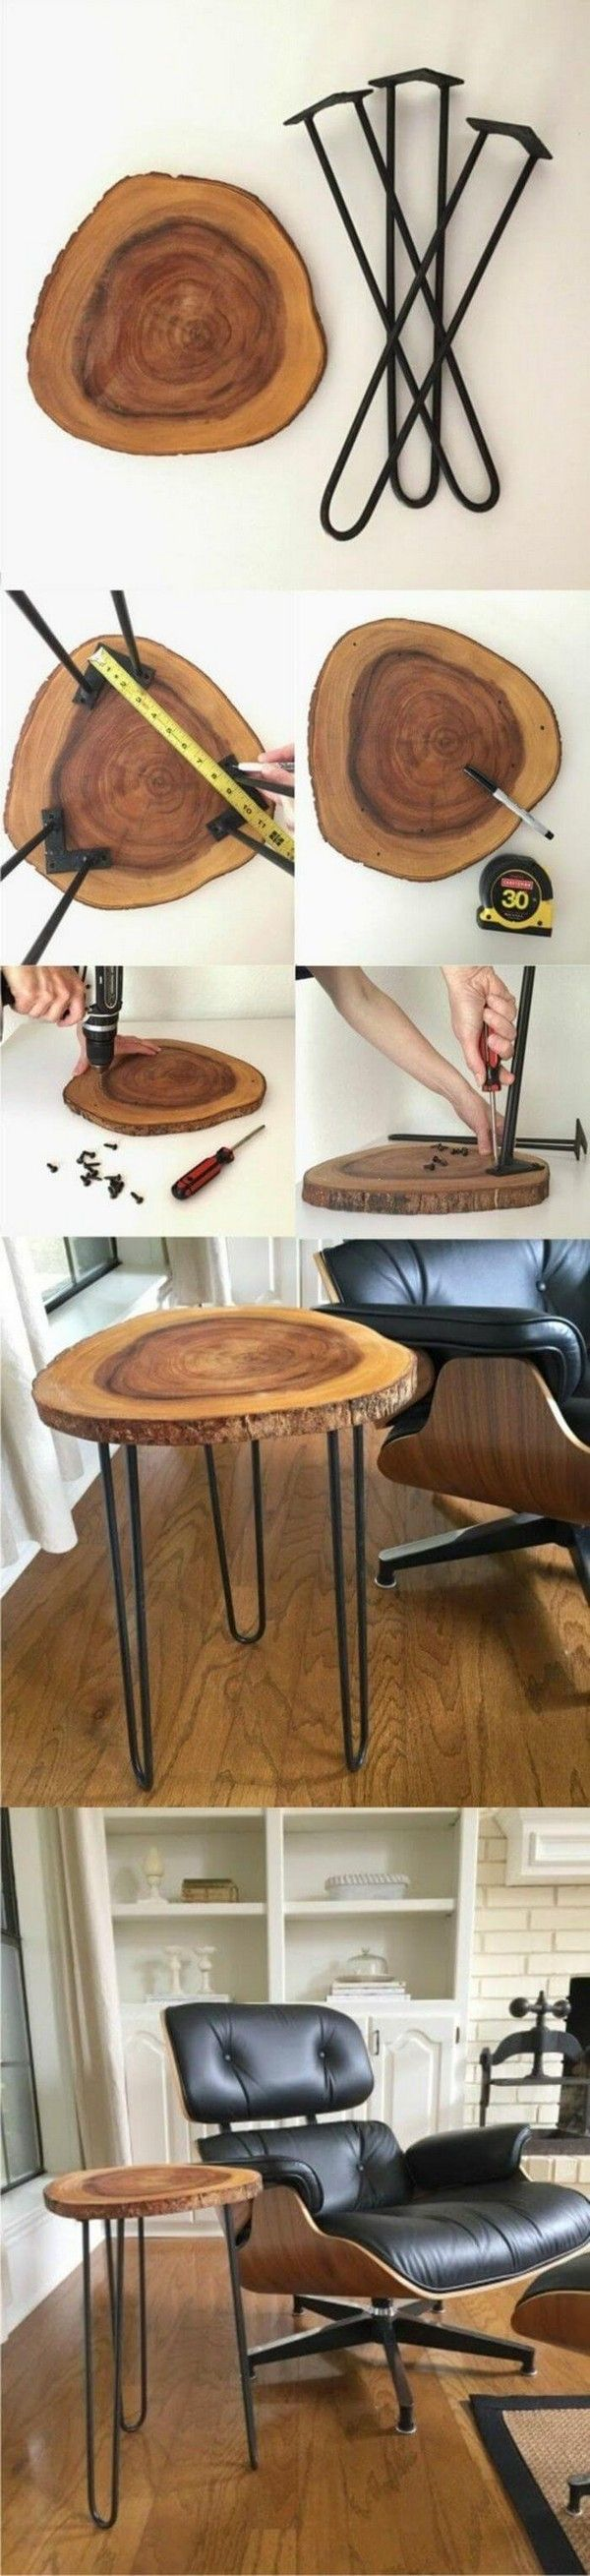 Photo of 18 Exciting Weekend DIY Home Decor Projects for Making Your Own Trendy Decor – The ART in LIFE